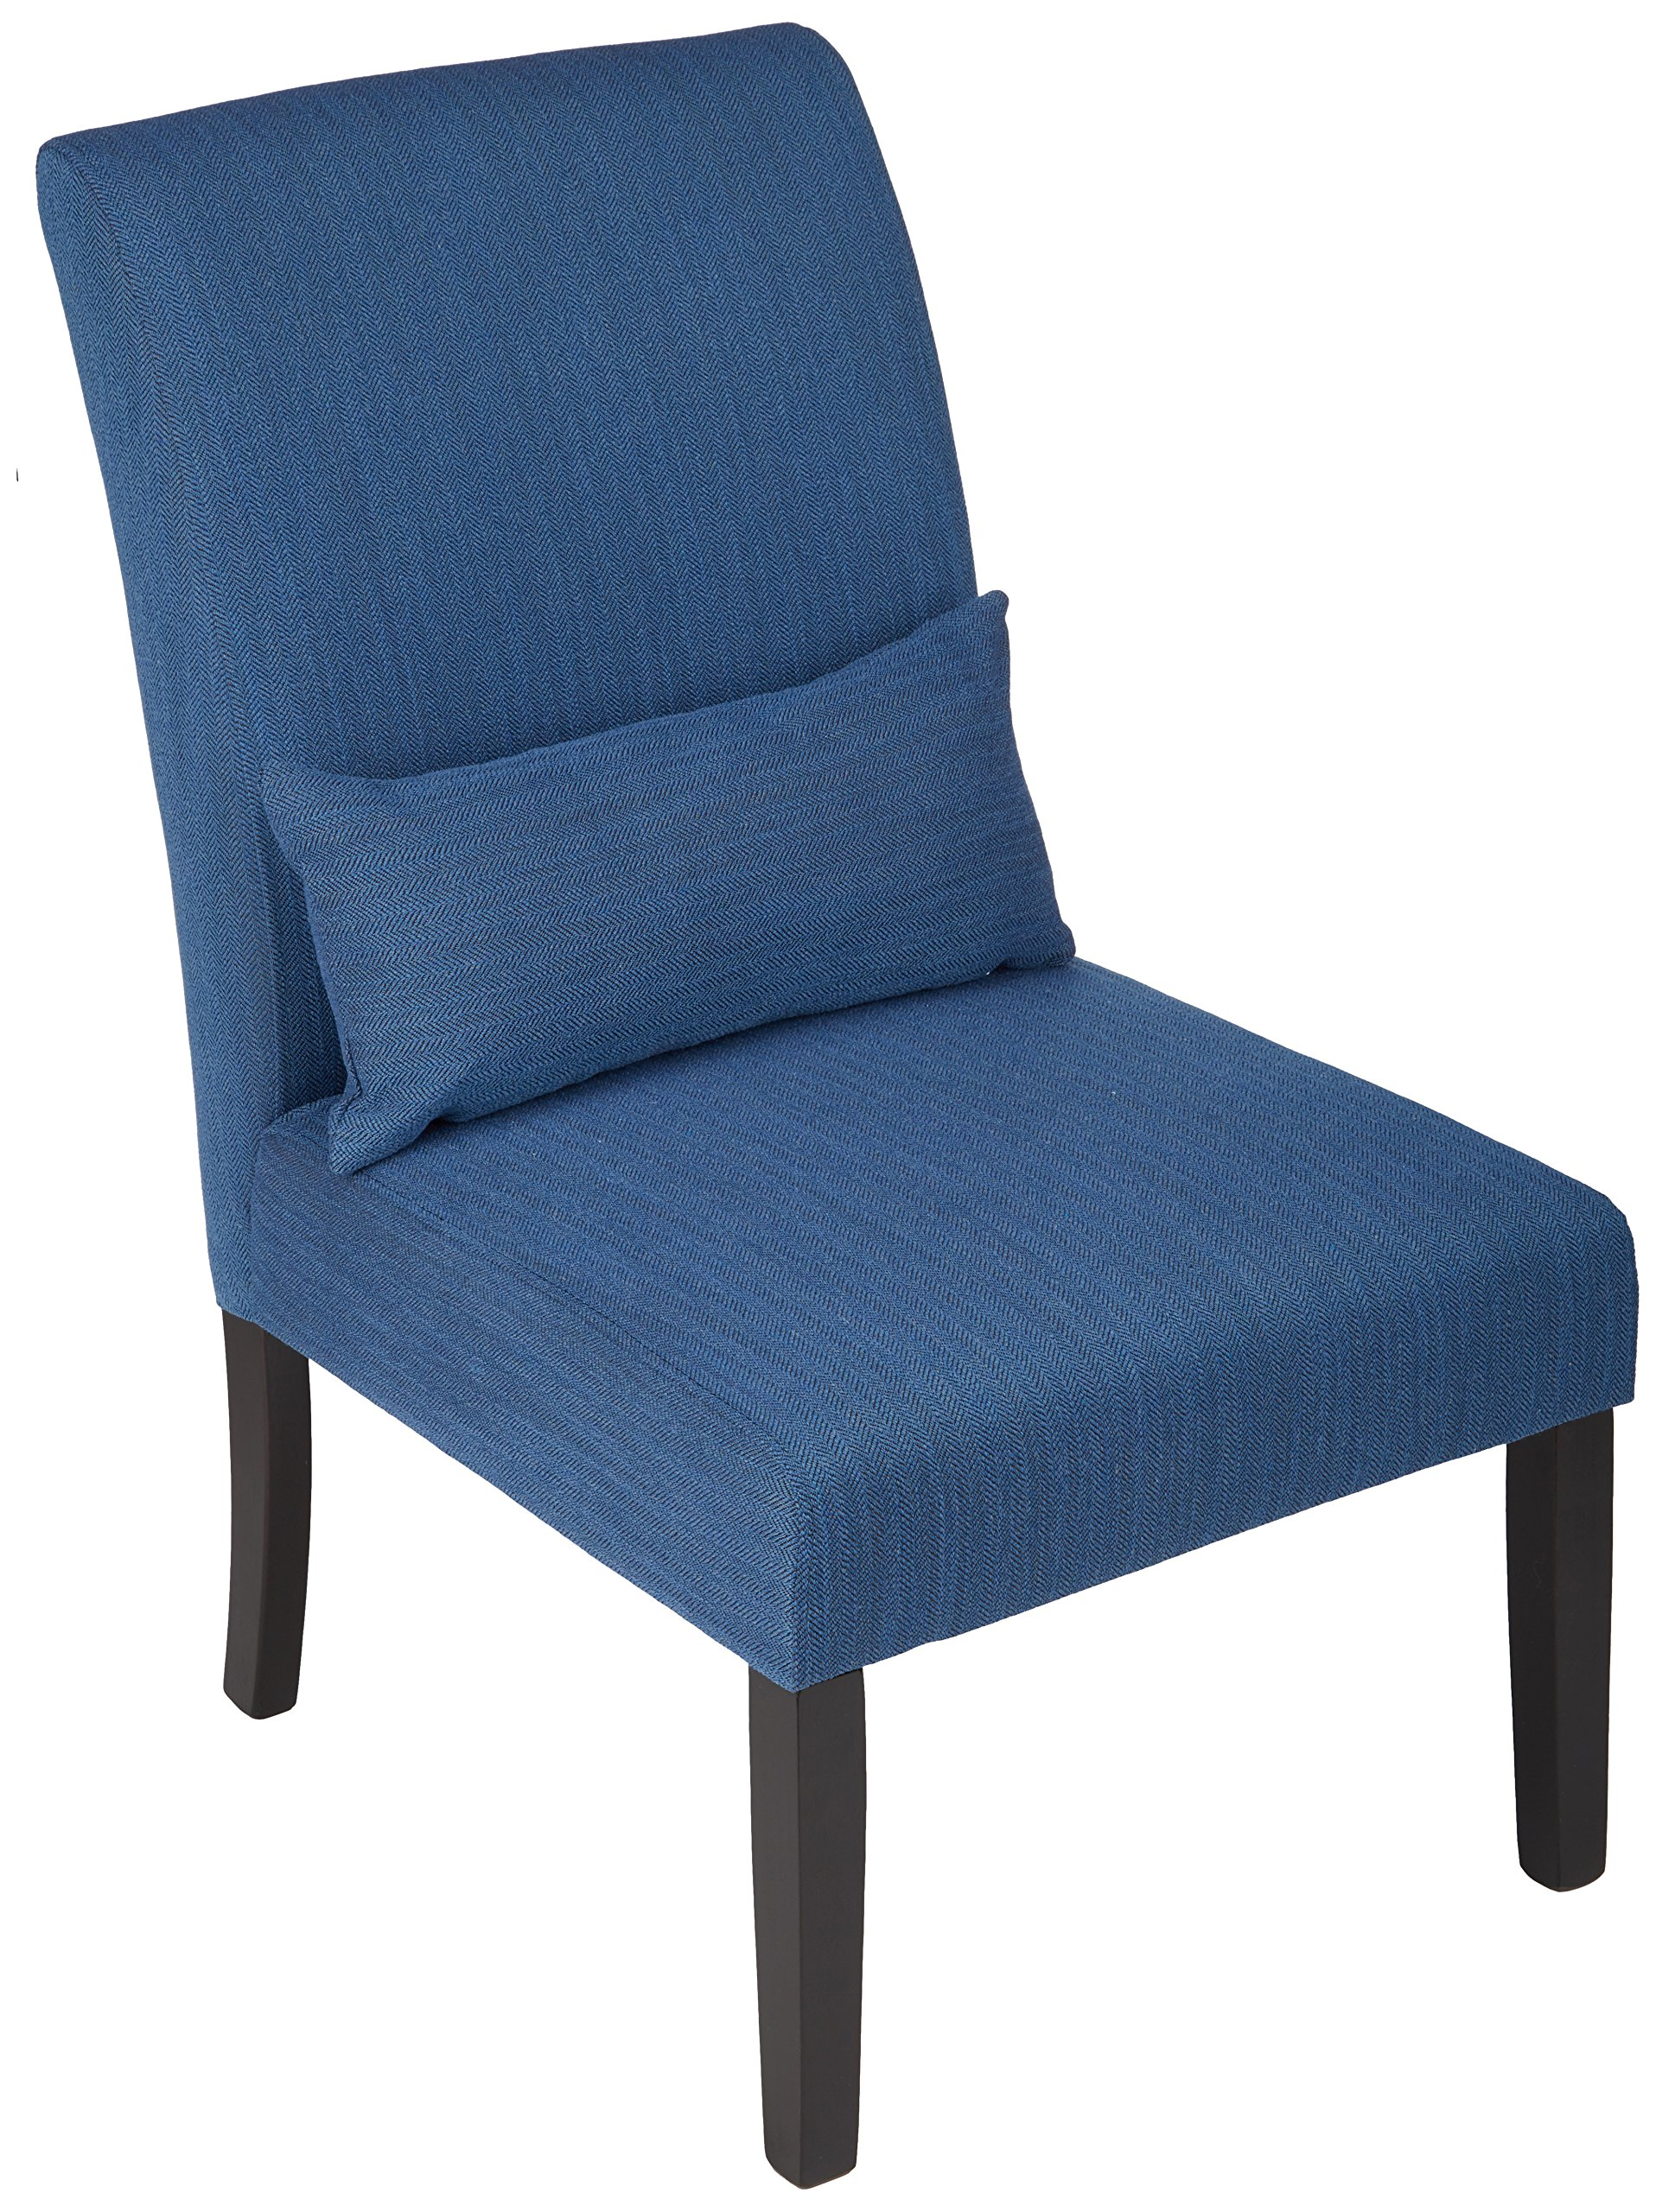 Ashley Furniture Signature Design - Sesto Accent Chair w/Pillow - Contemporary - Blue - Black Finish Legs